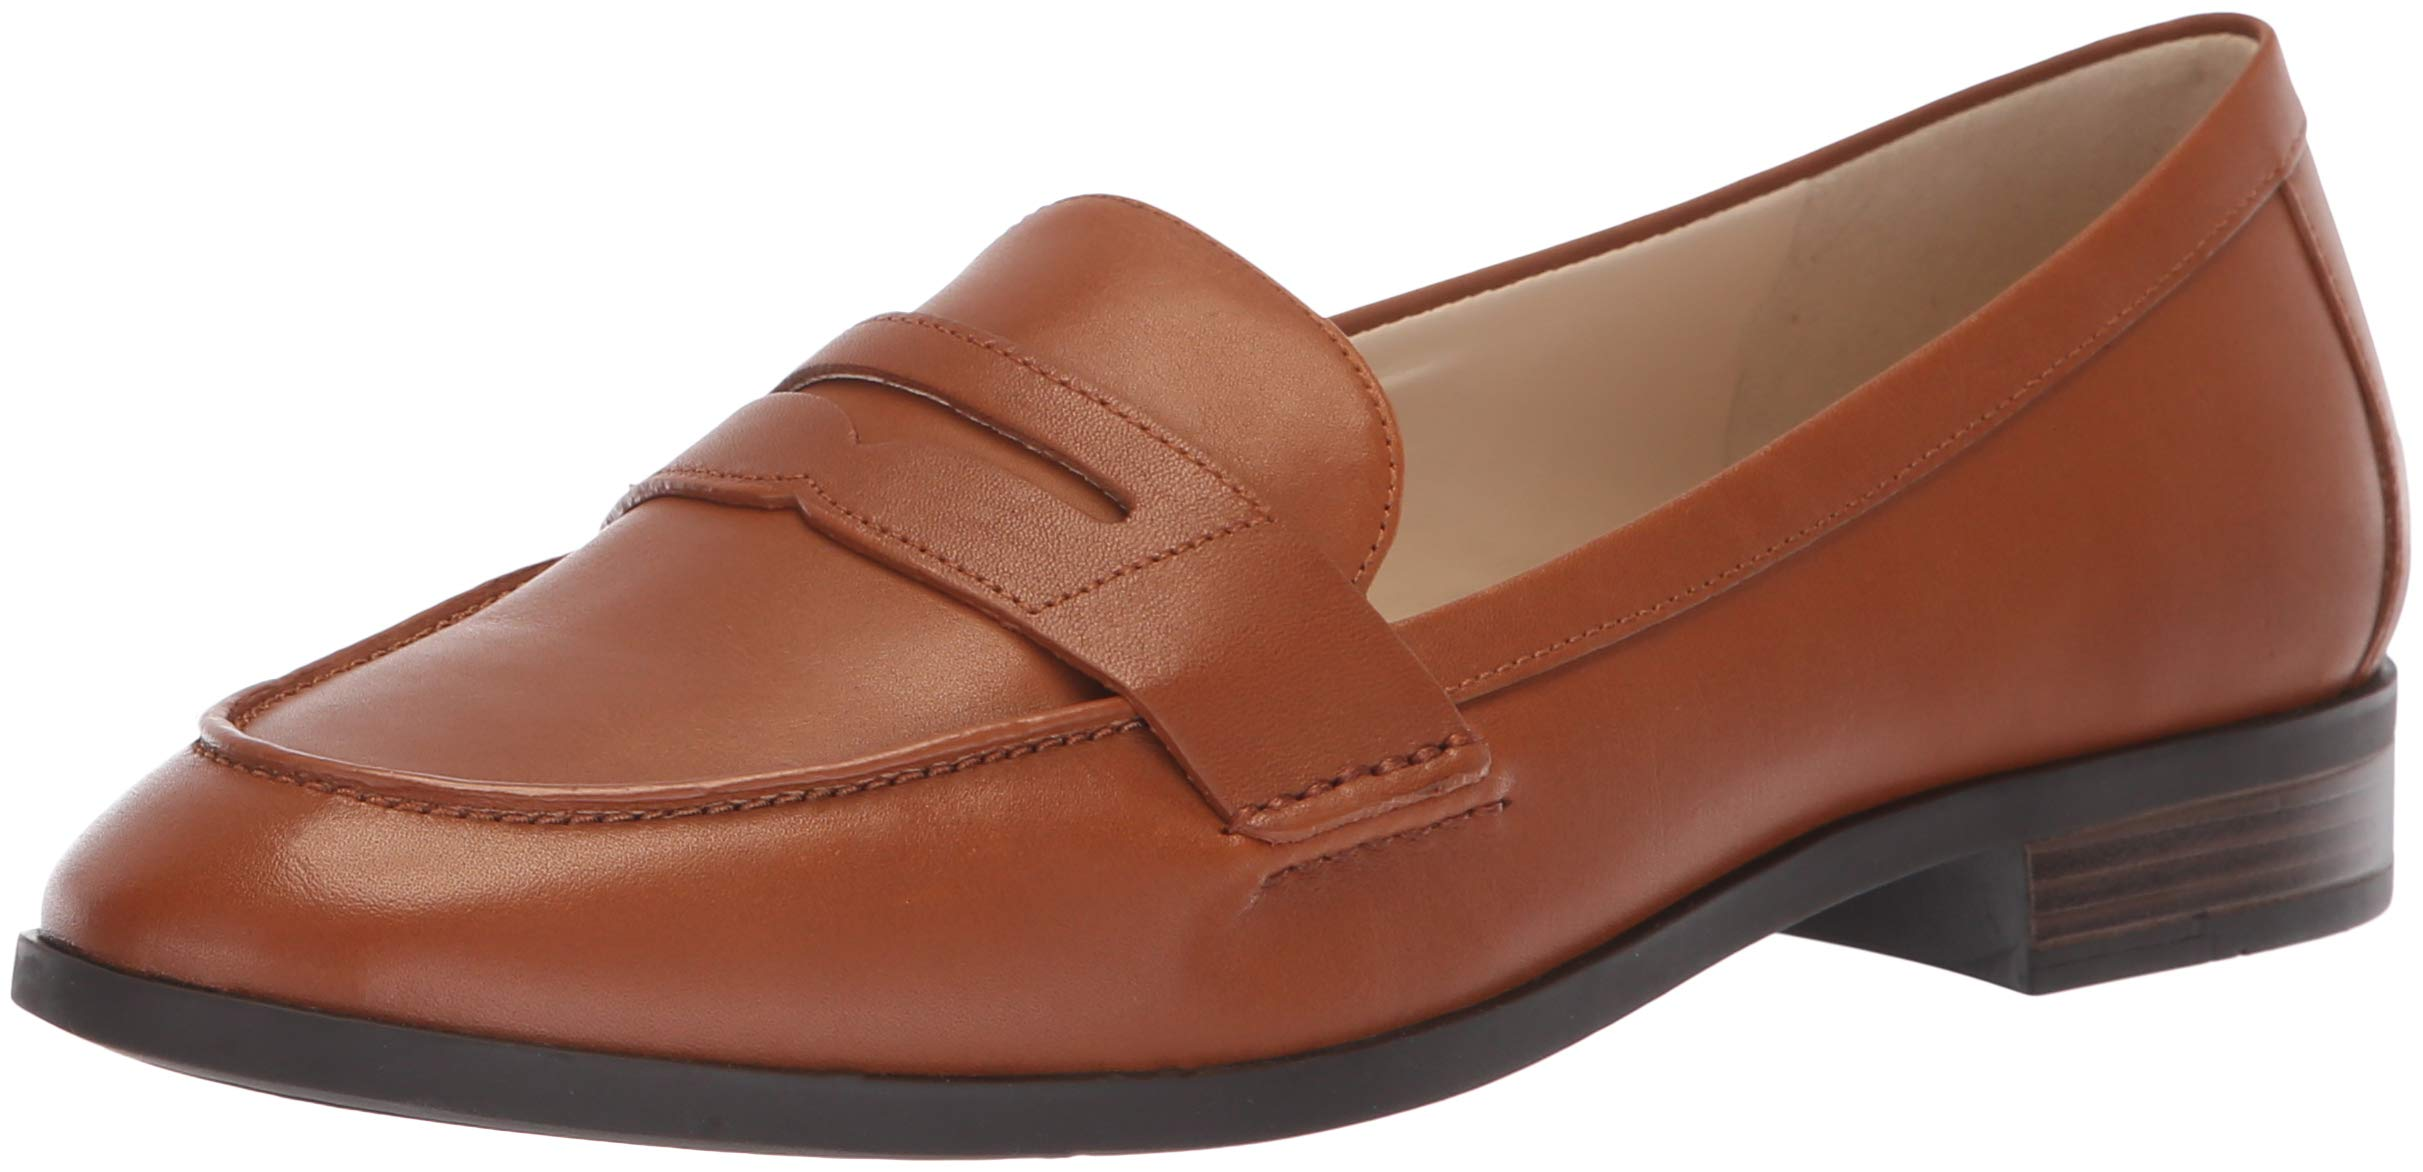 afe217dfd22 Cole Haan Women's Pinch Grand Penny Loafer Flat, British tan Leather, 9 B US